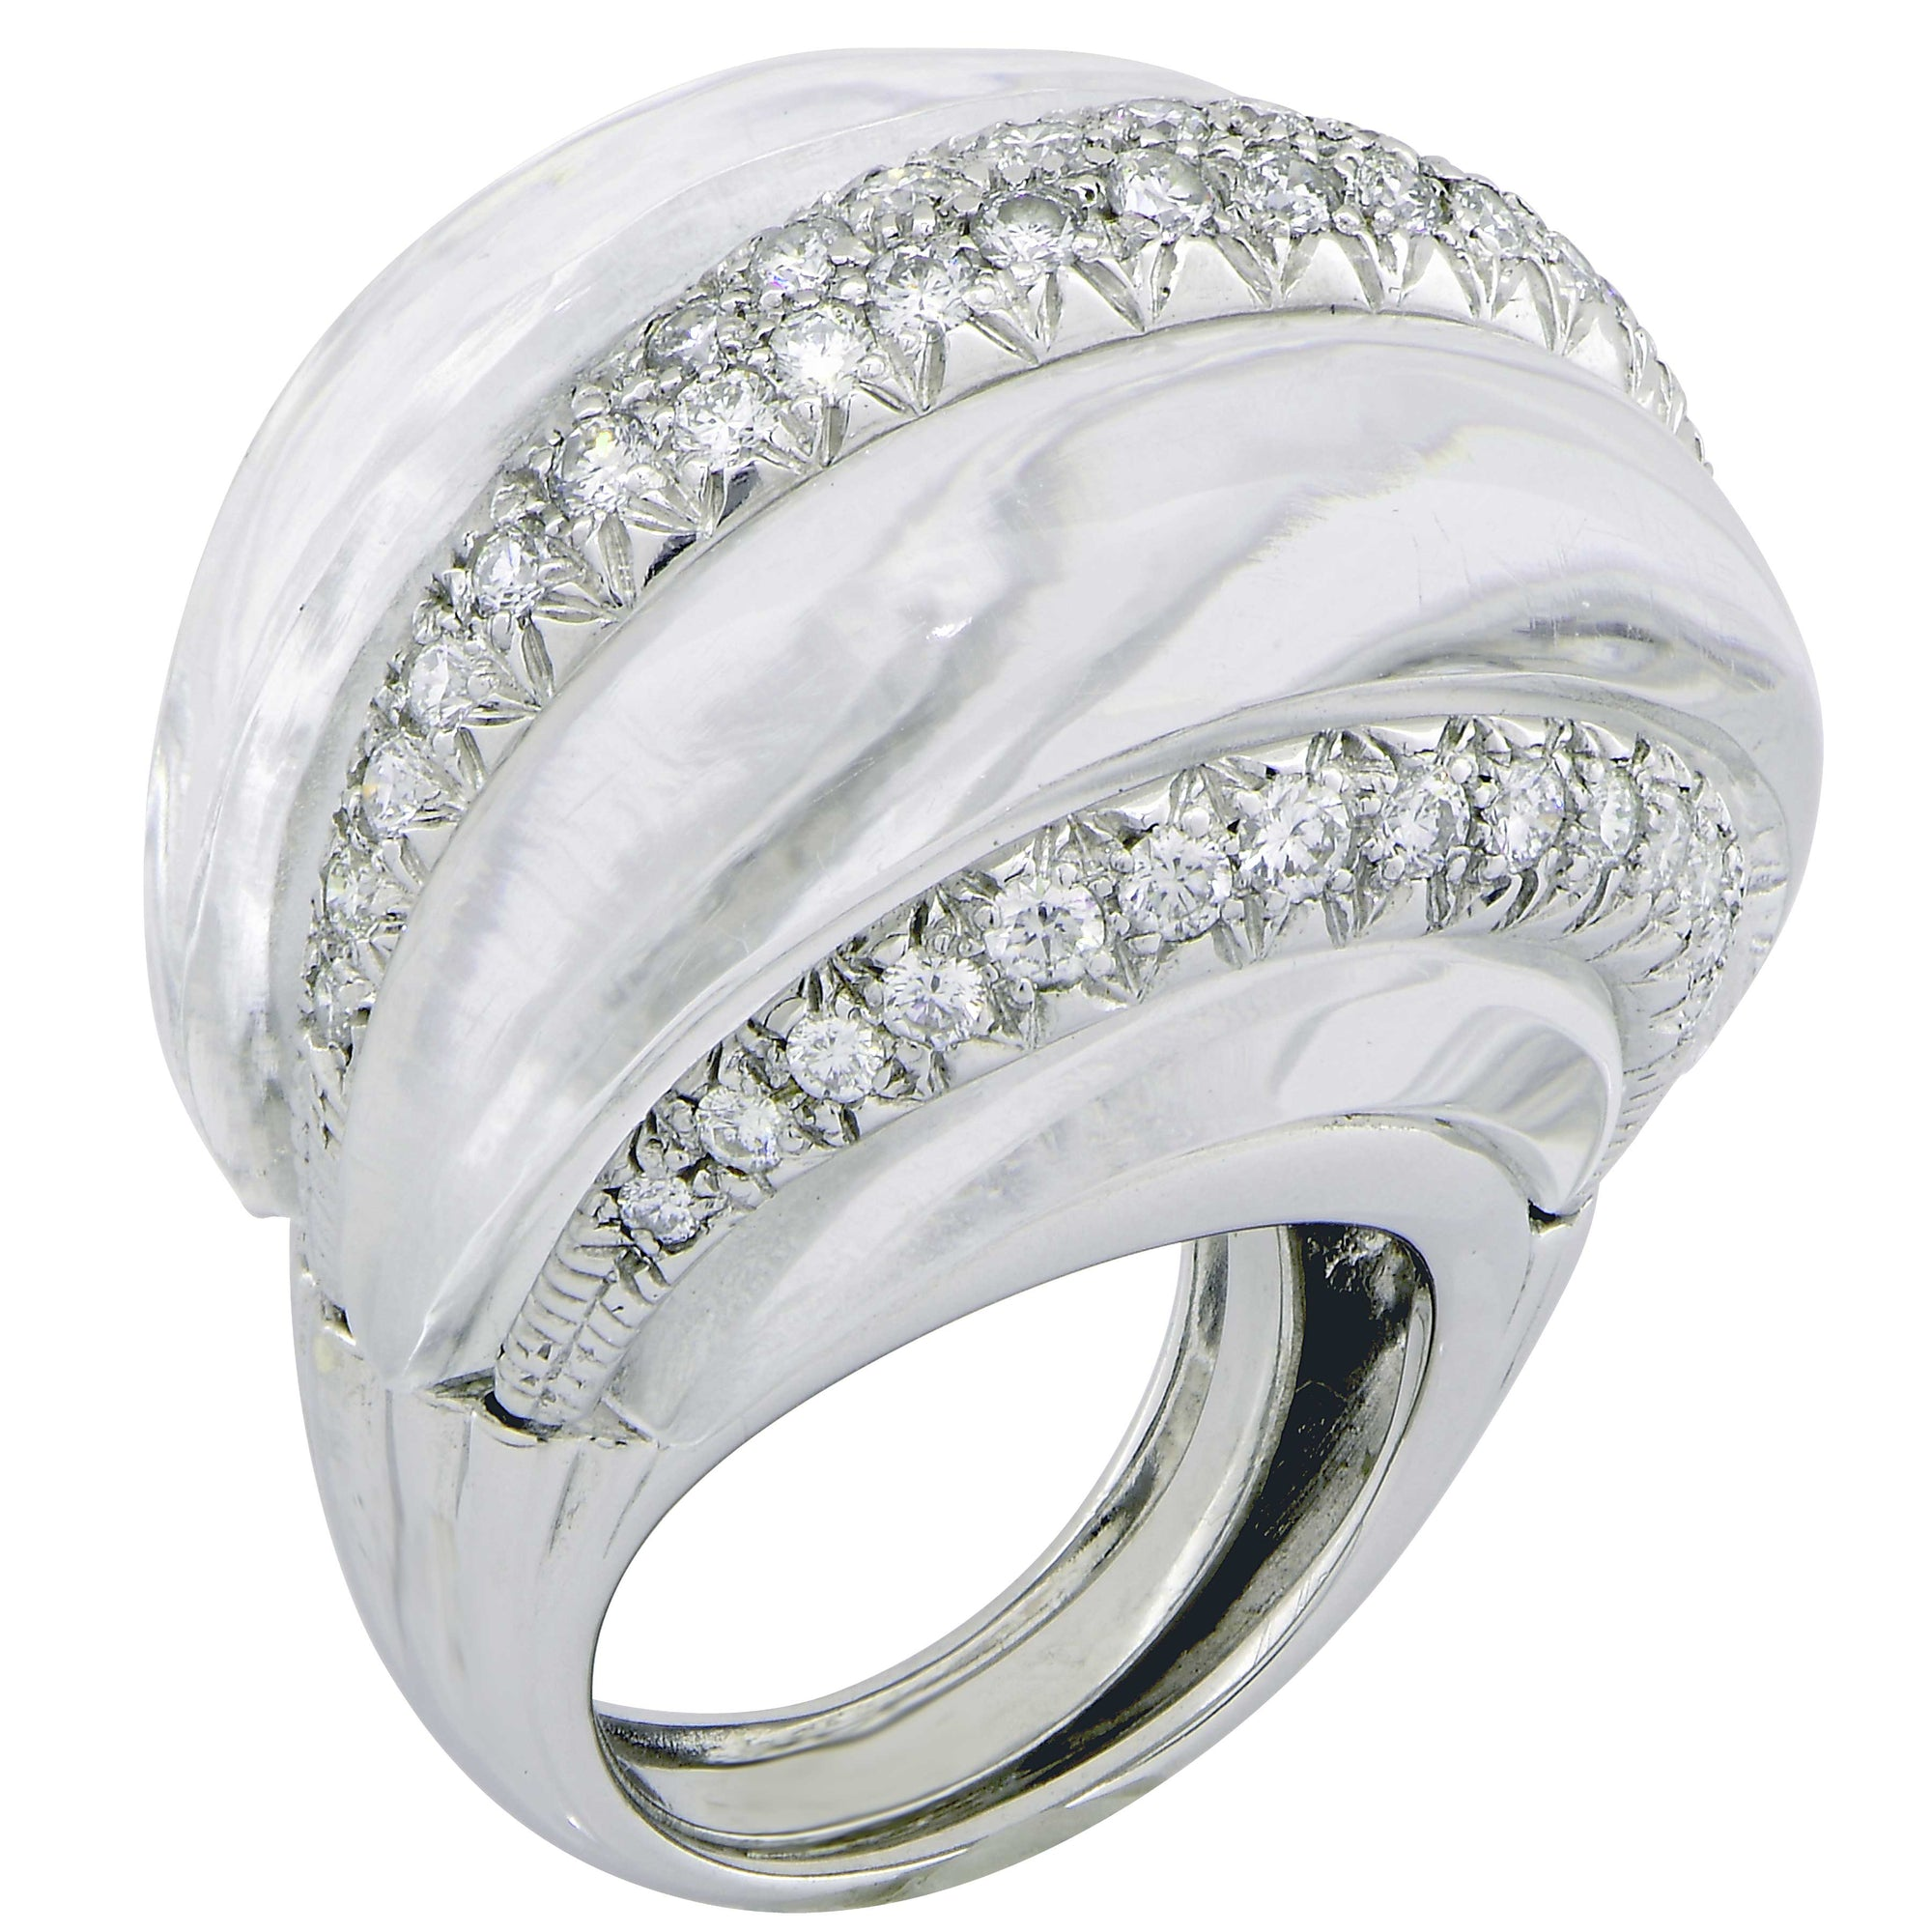 David Webb Rock Crystal and Diamond 18 Karat White Gold Ring